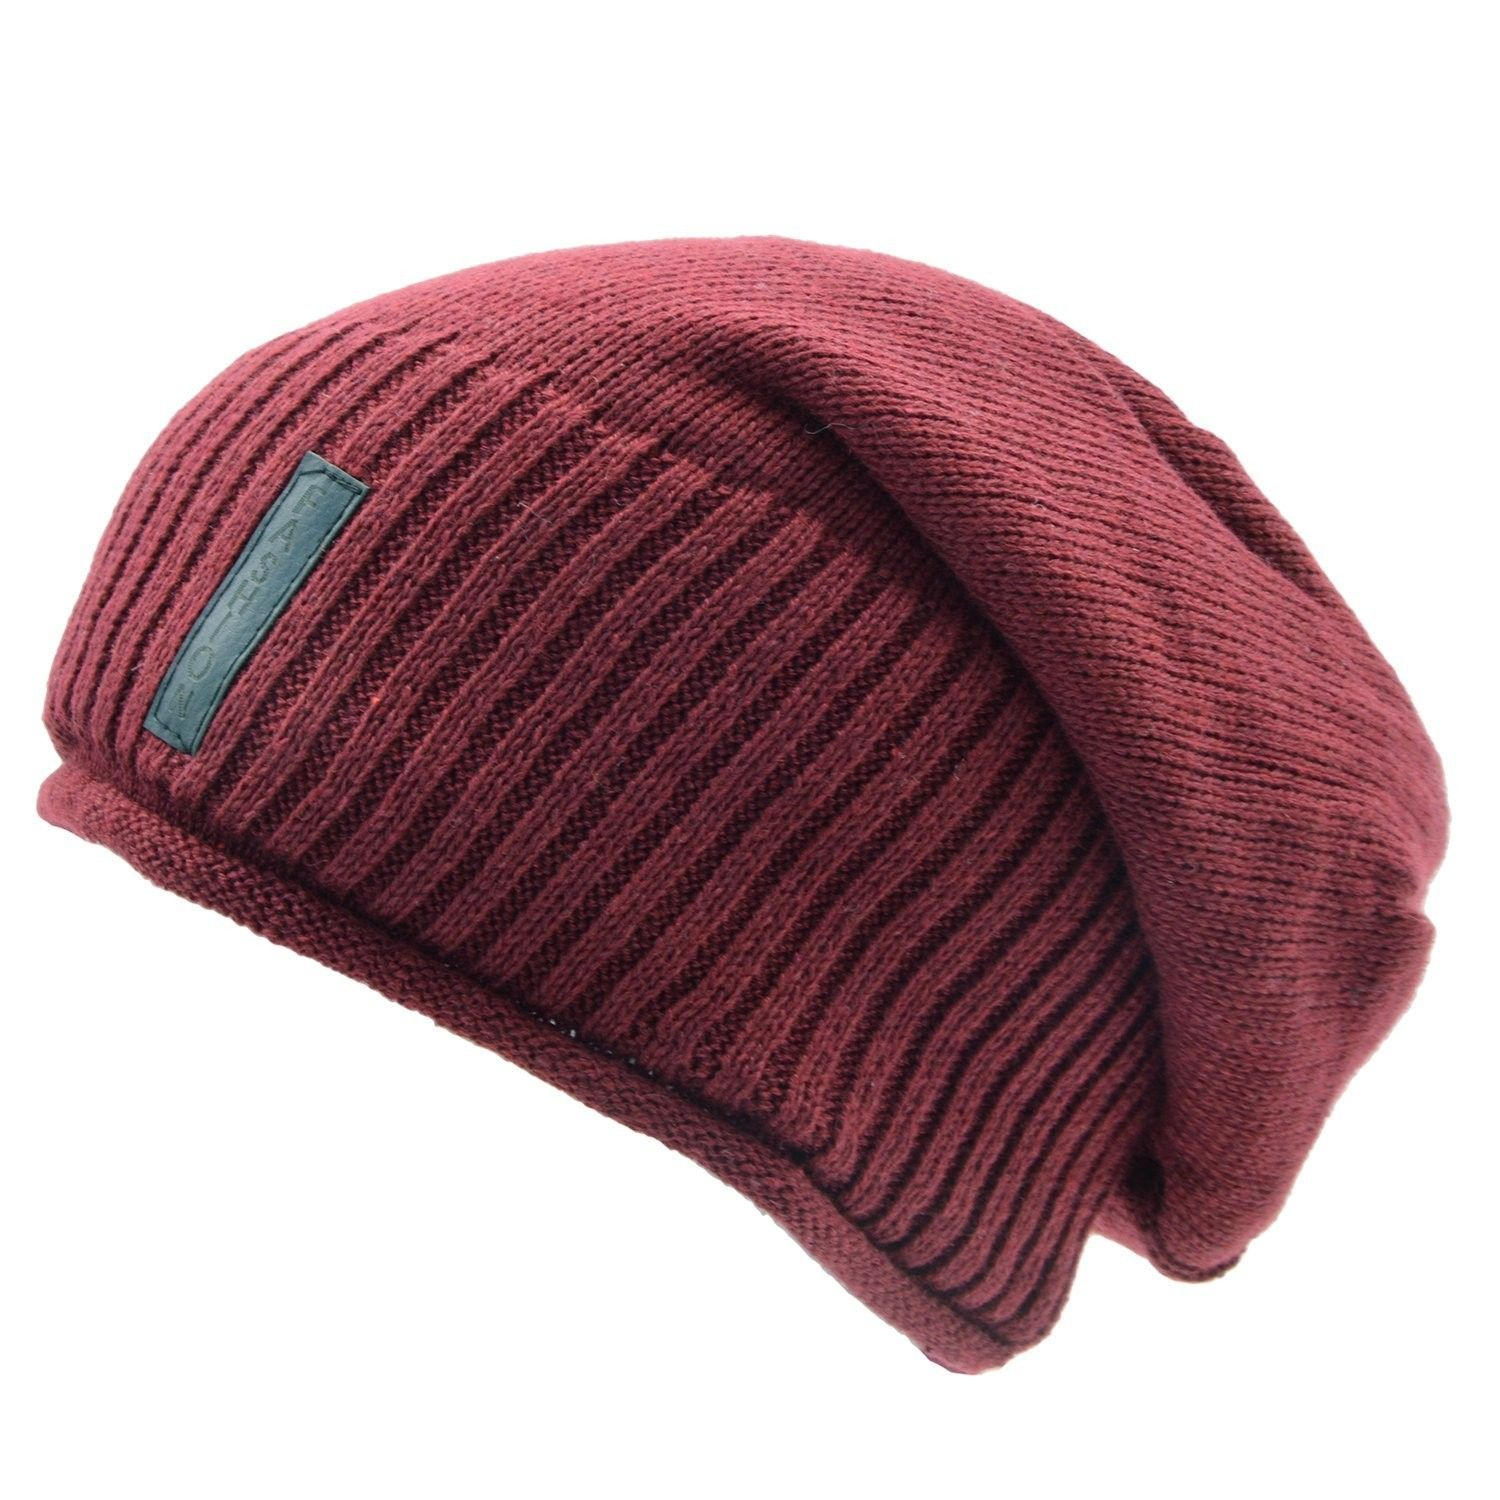 Warm Knit Hat For Men   Women- Soft Long Loose Winter Hat With Hemming and  Wool Inner - Red - CS186OZXGDM - Hats   Caps 29479a6988b